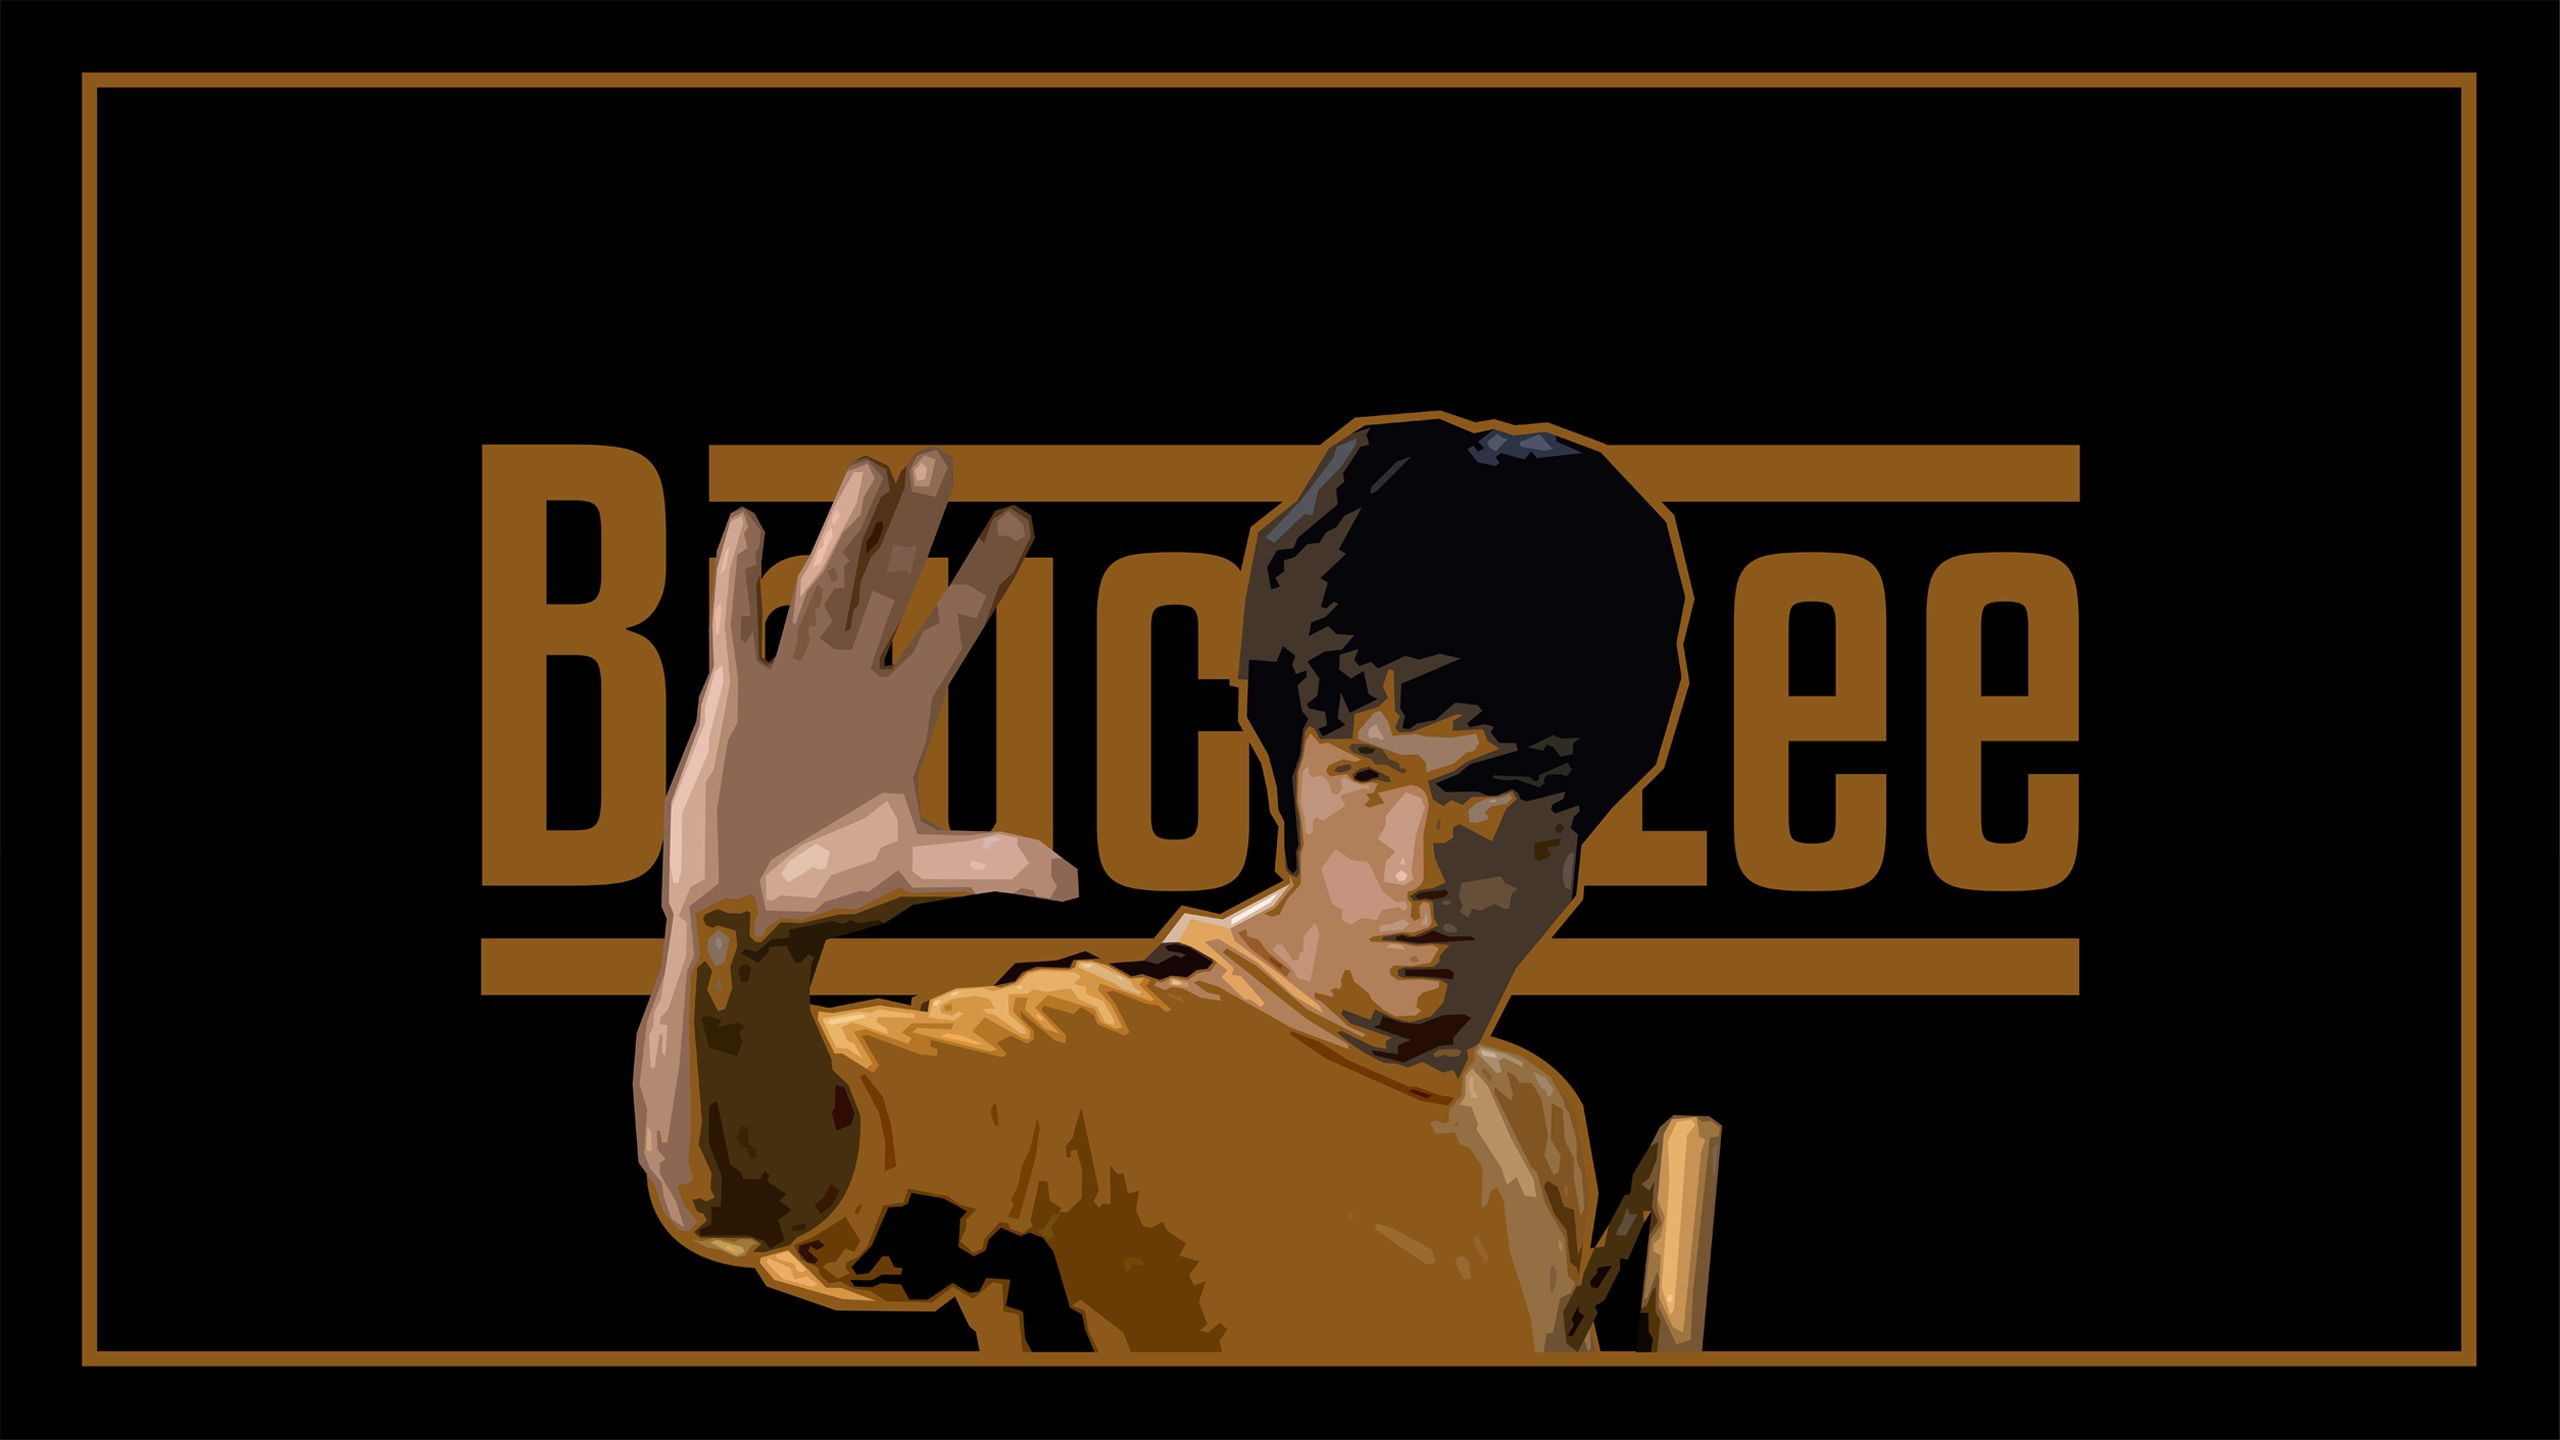 Bruce Lee Wallpapers HD Download HD Wallpapers